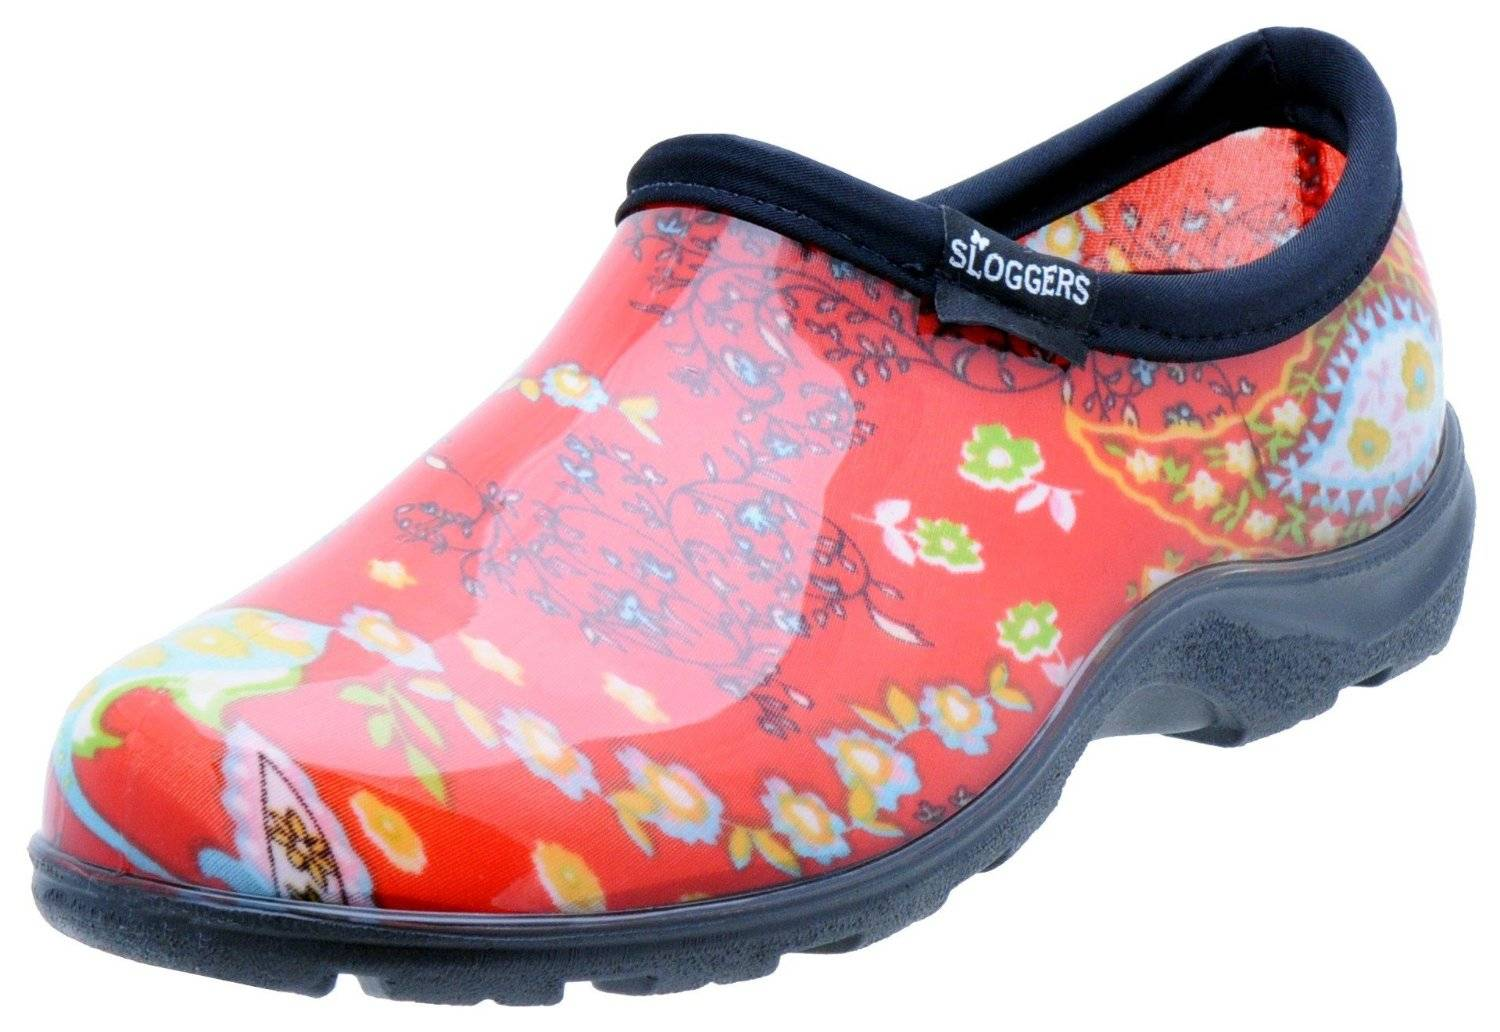 Sloggers 5104rd10 Women's Garden Shoes, Paisley Red, Size 10